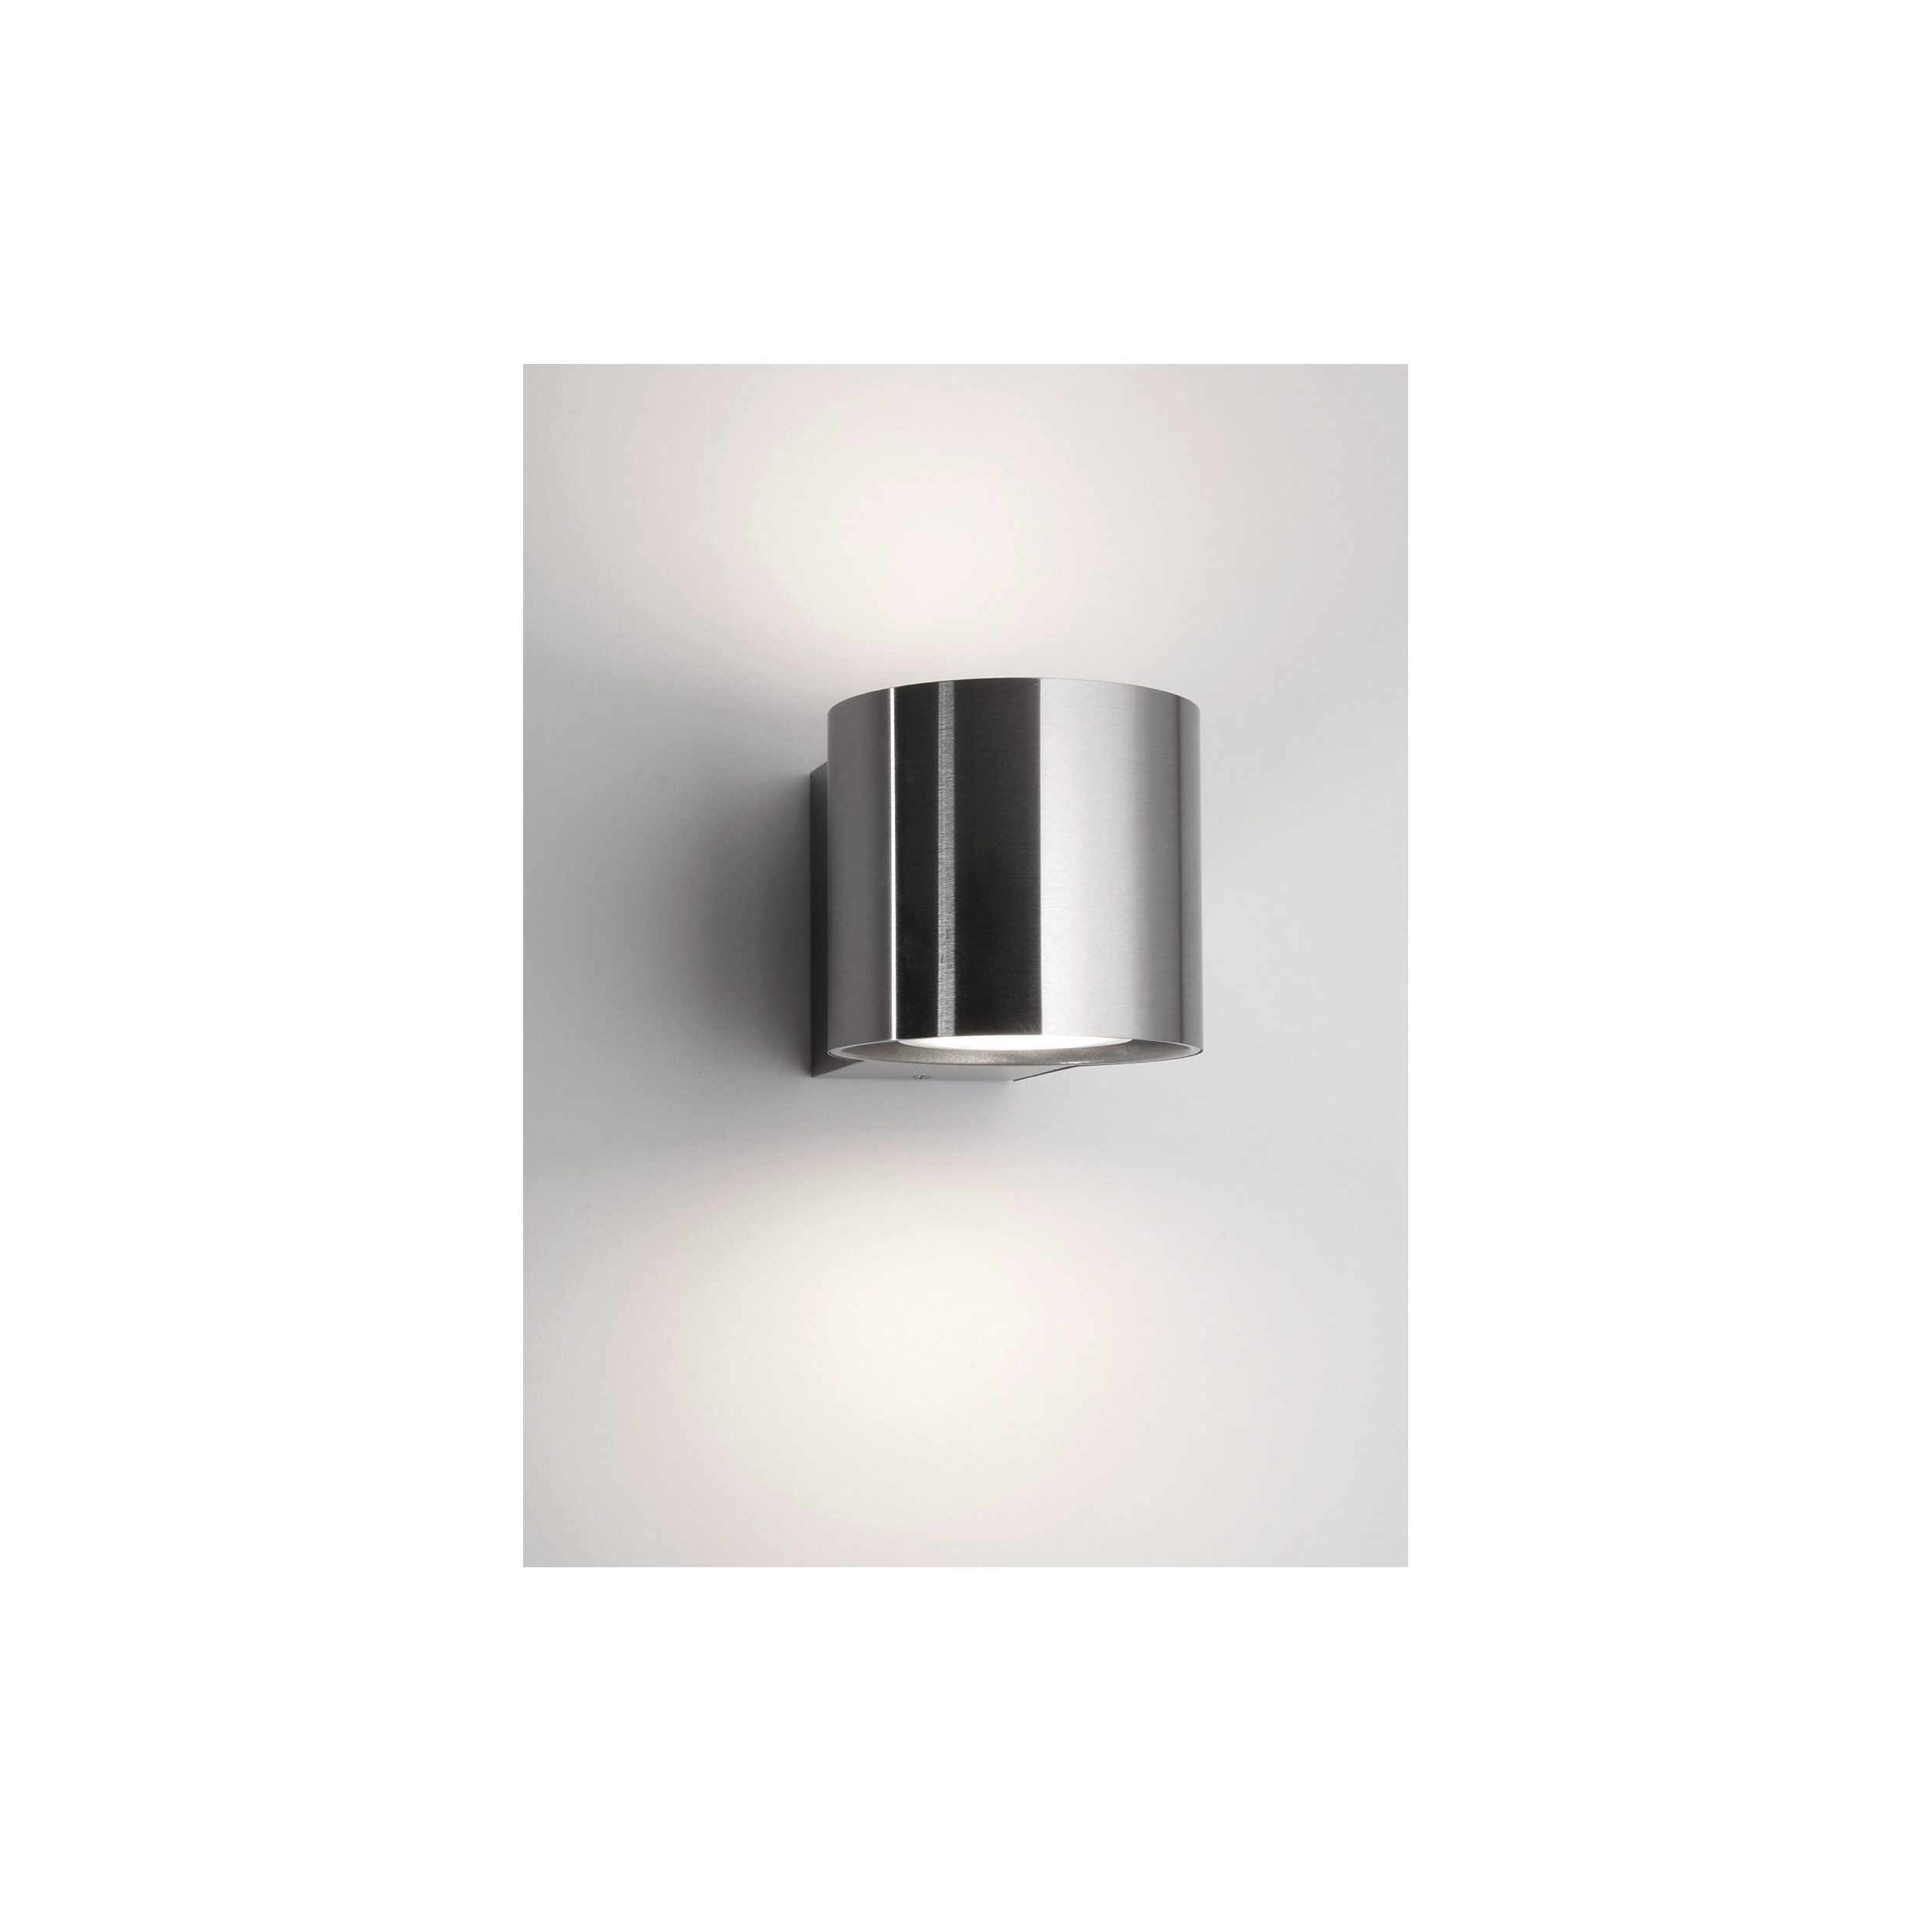 Philips ledino applique murale ext rieur moderne lampe for Applique murale exterieur ebay